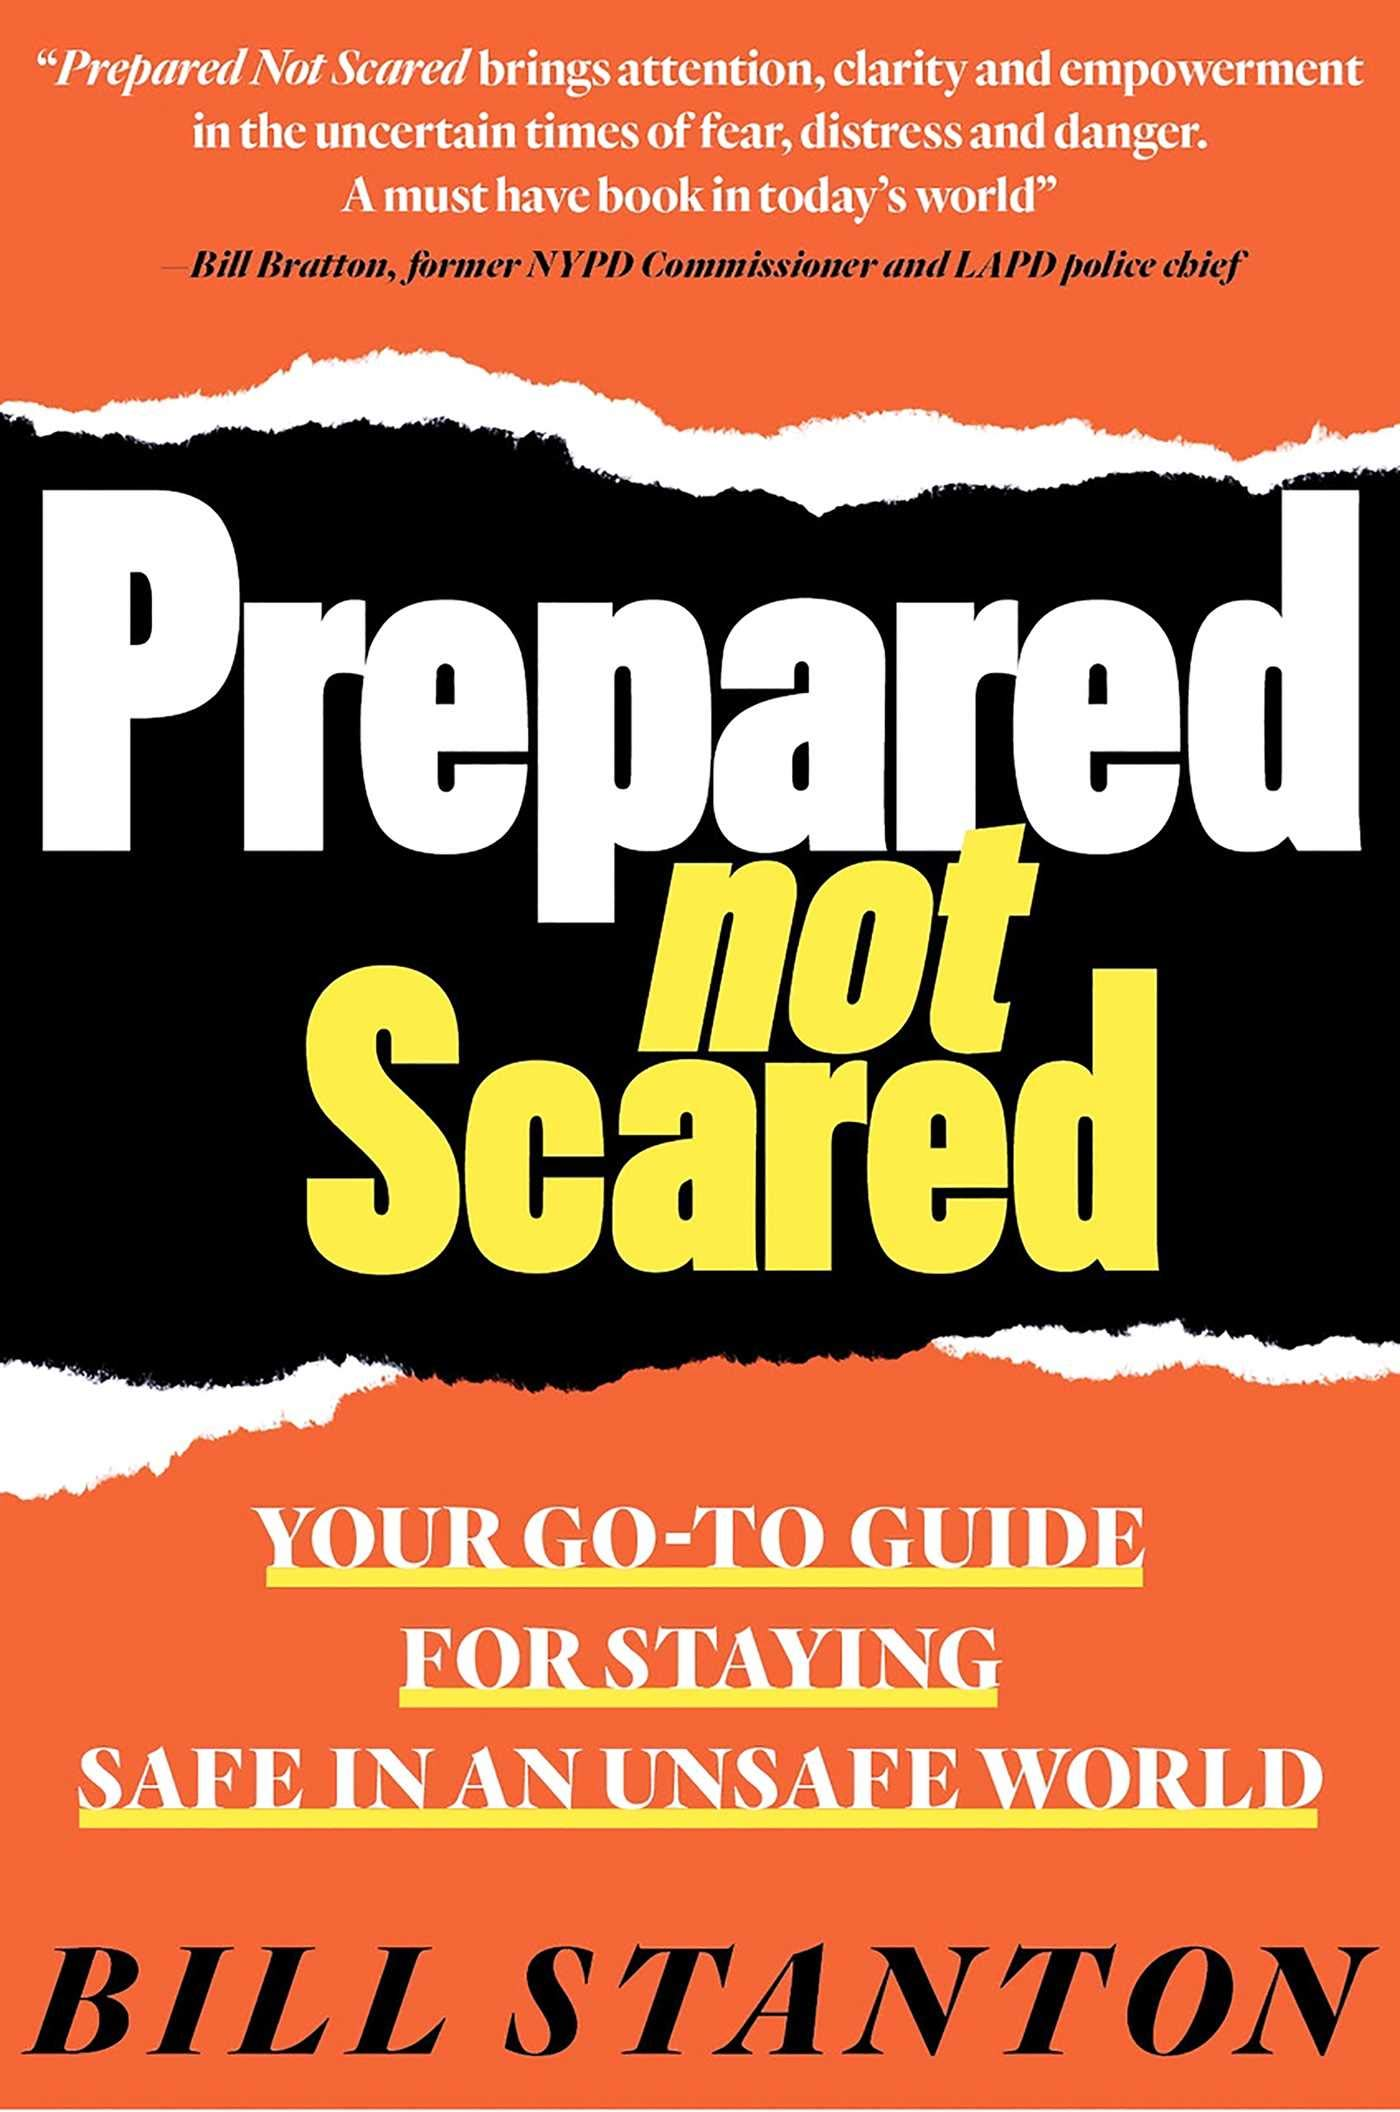 Prepared Not Scared: Your Go-To Guide for Staying Safe in an Unsafe World by Galvanized Media